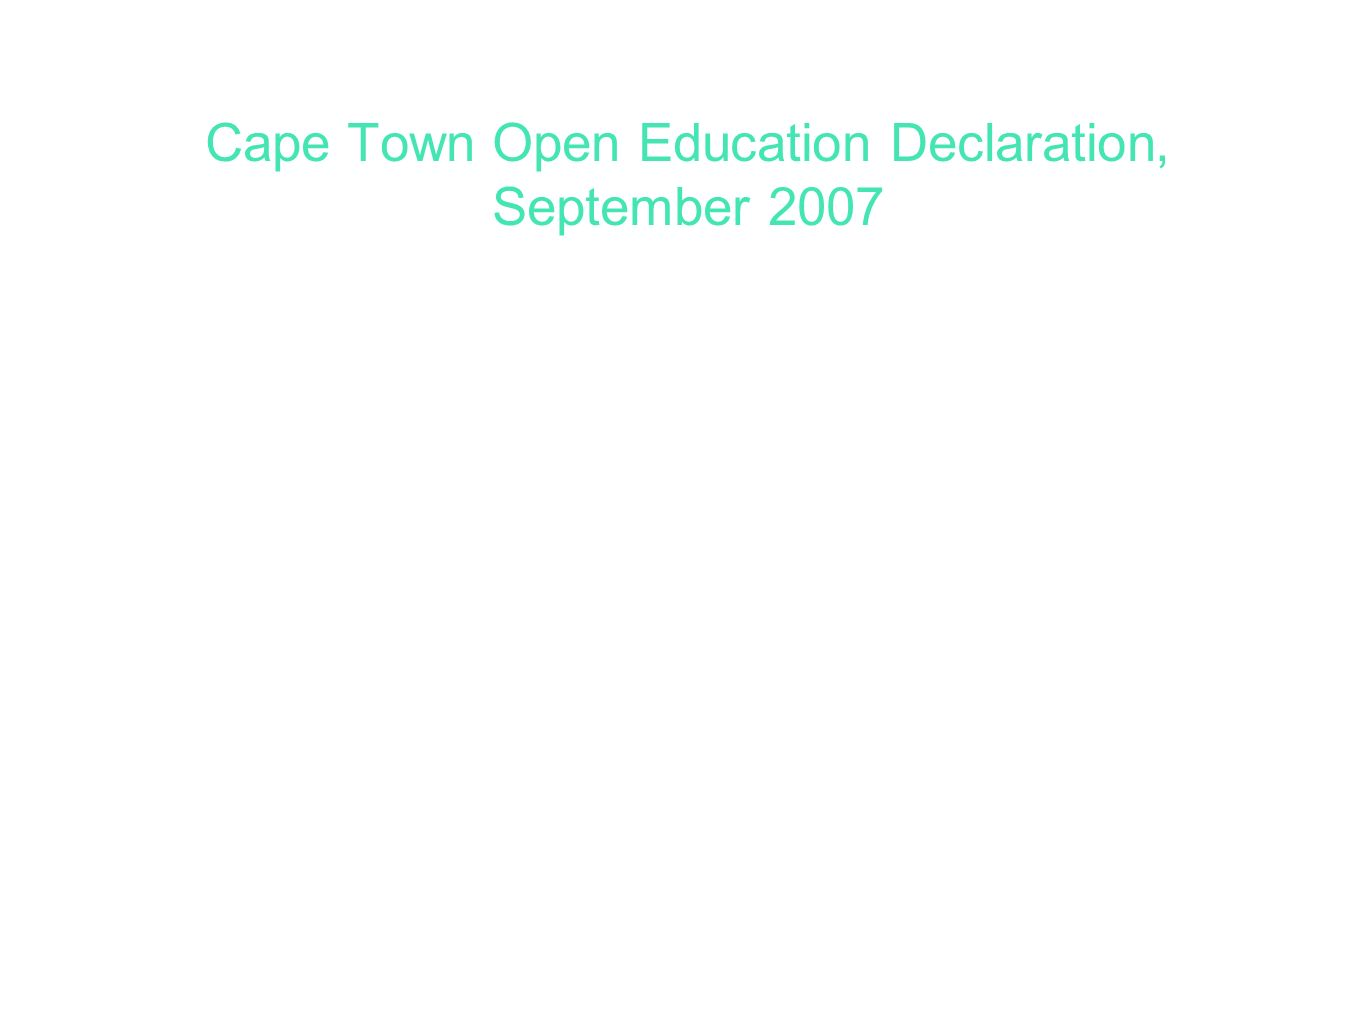 Cape Town Open Education Declaration, September 2007